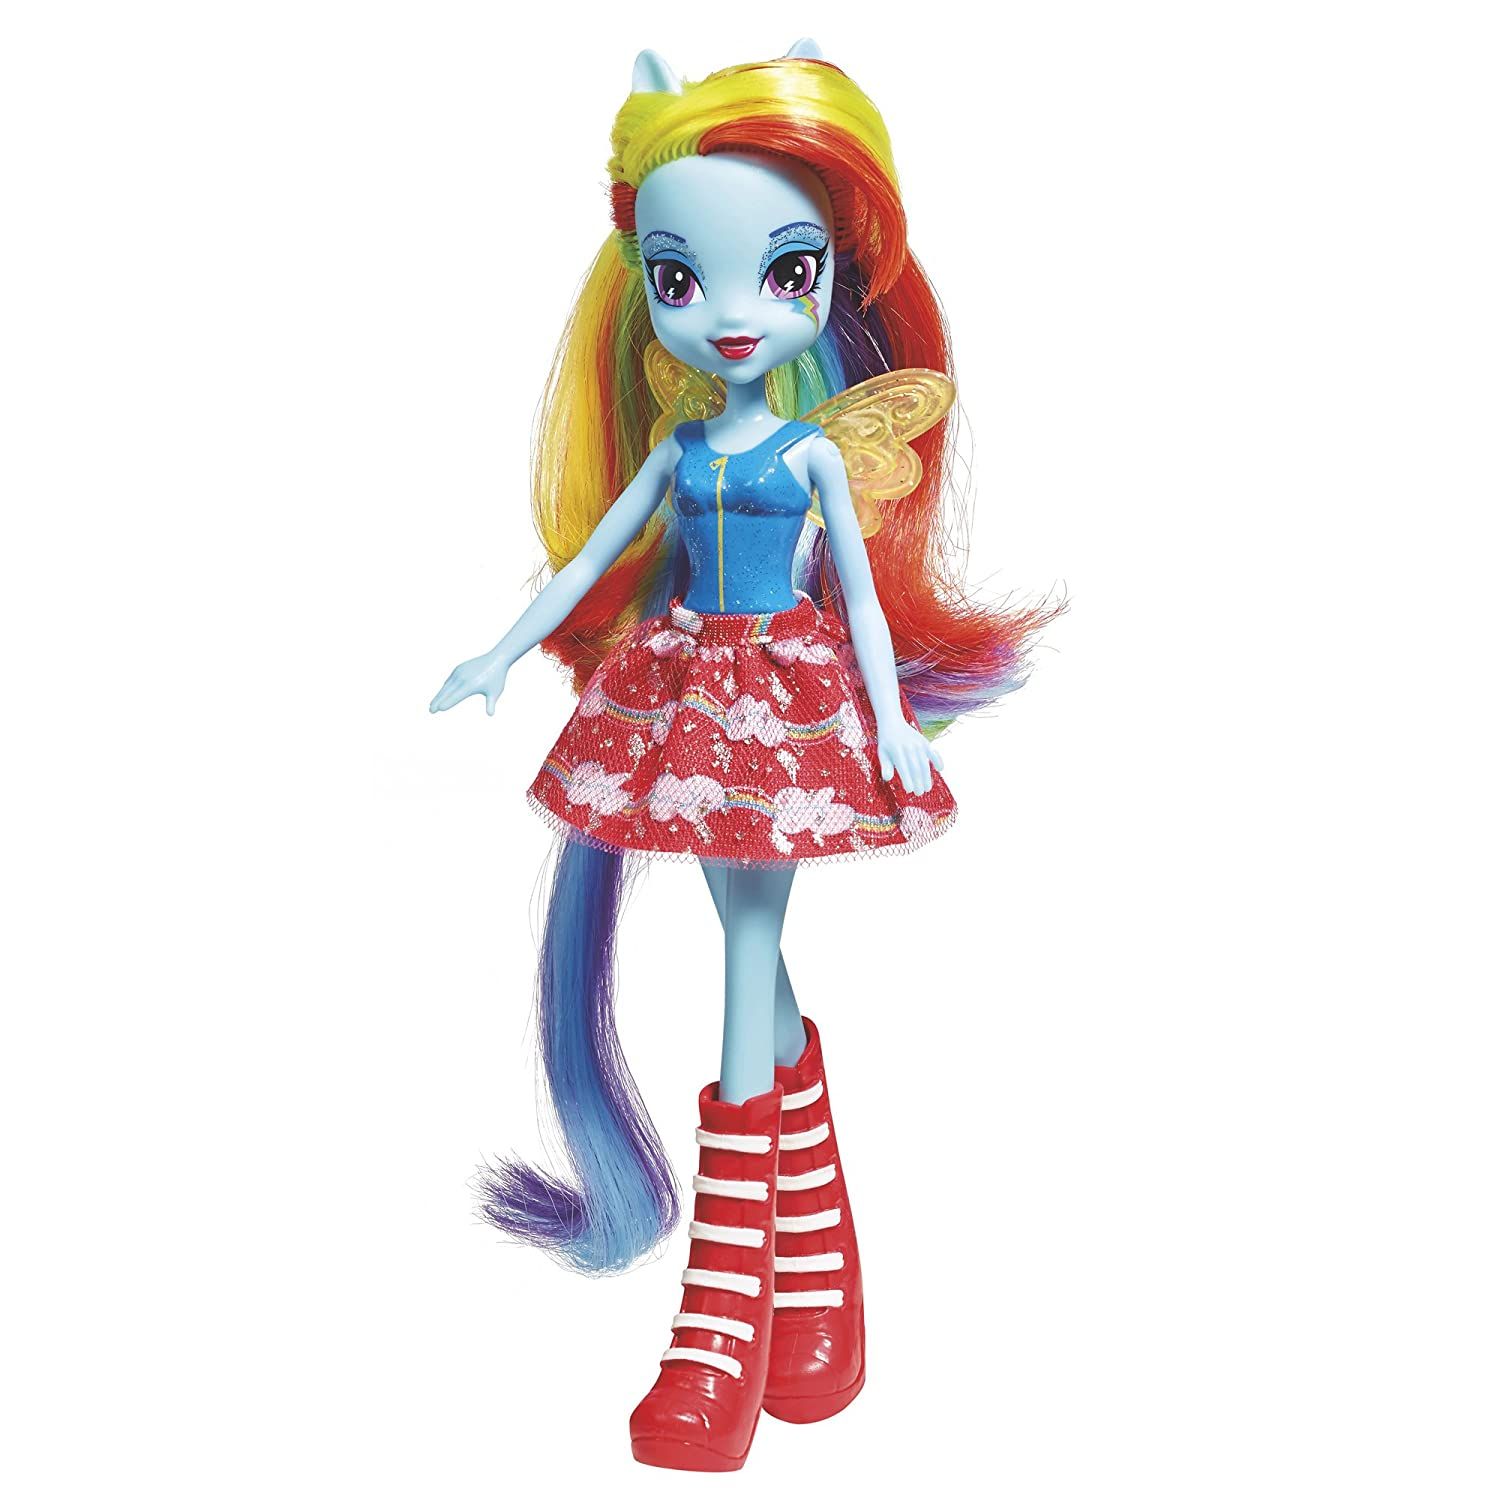 fe50a97c808 Amazon.com: My Little Pony Equestria Girls Rainbow Dash Doll: Toys & Games